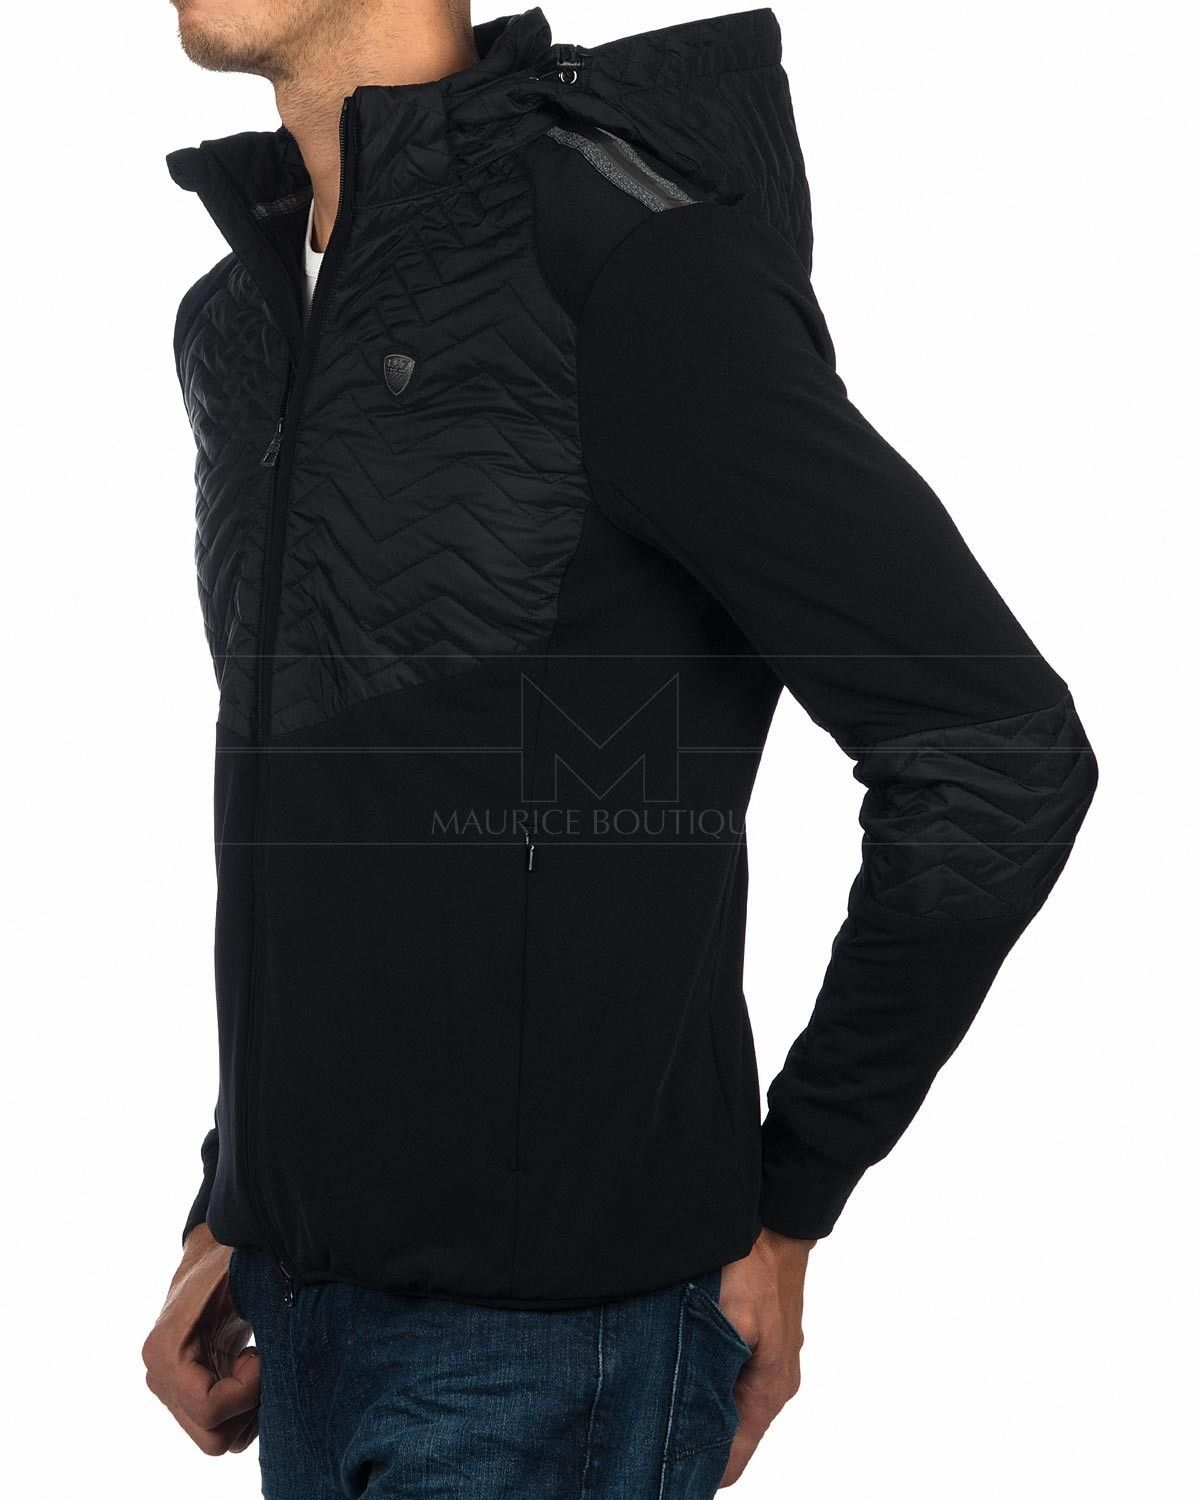 973a6a6352be3 EA7 Emporio Armani Bomber Jacket Mountain M Shaded - Grey in 2019 ...